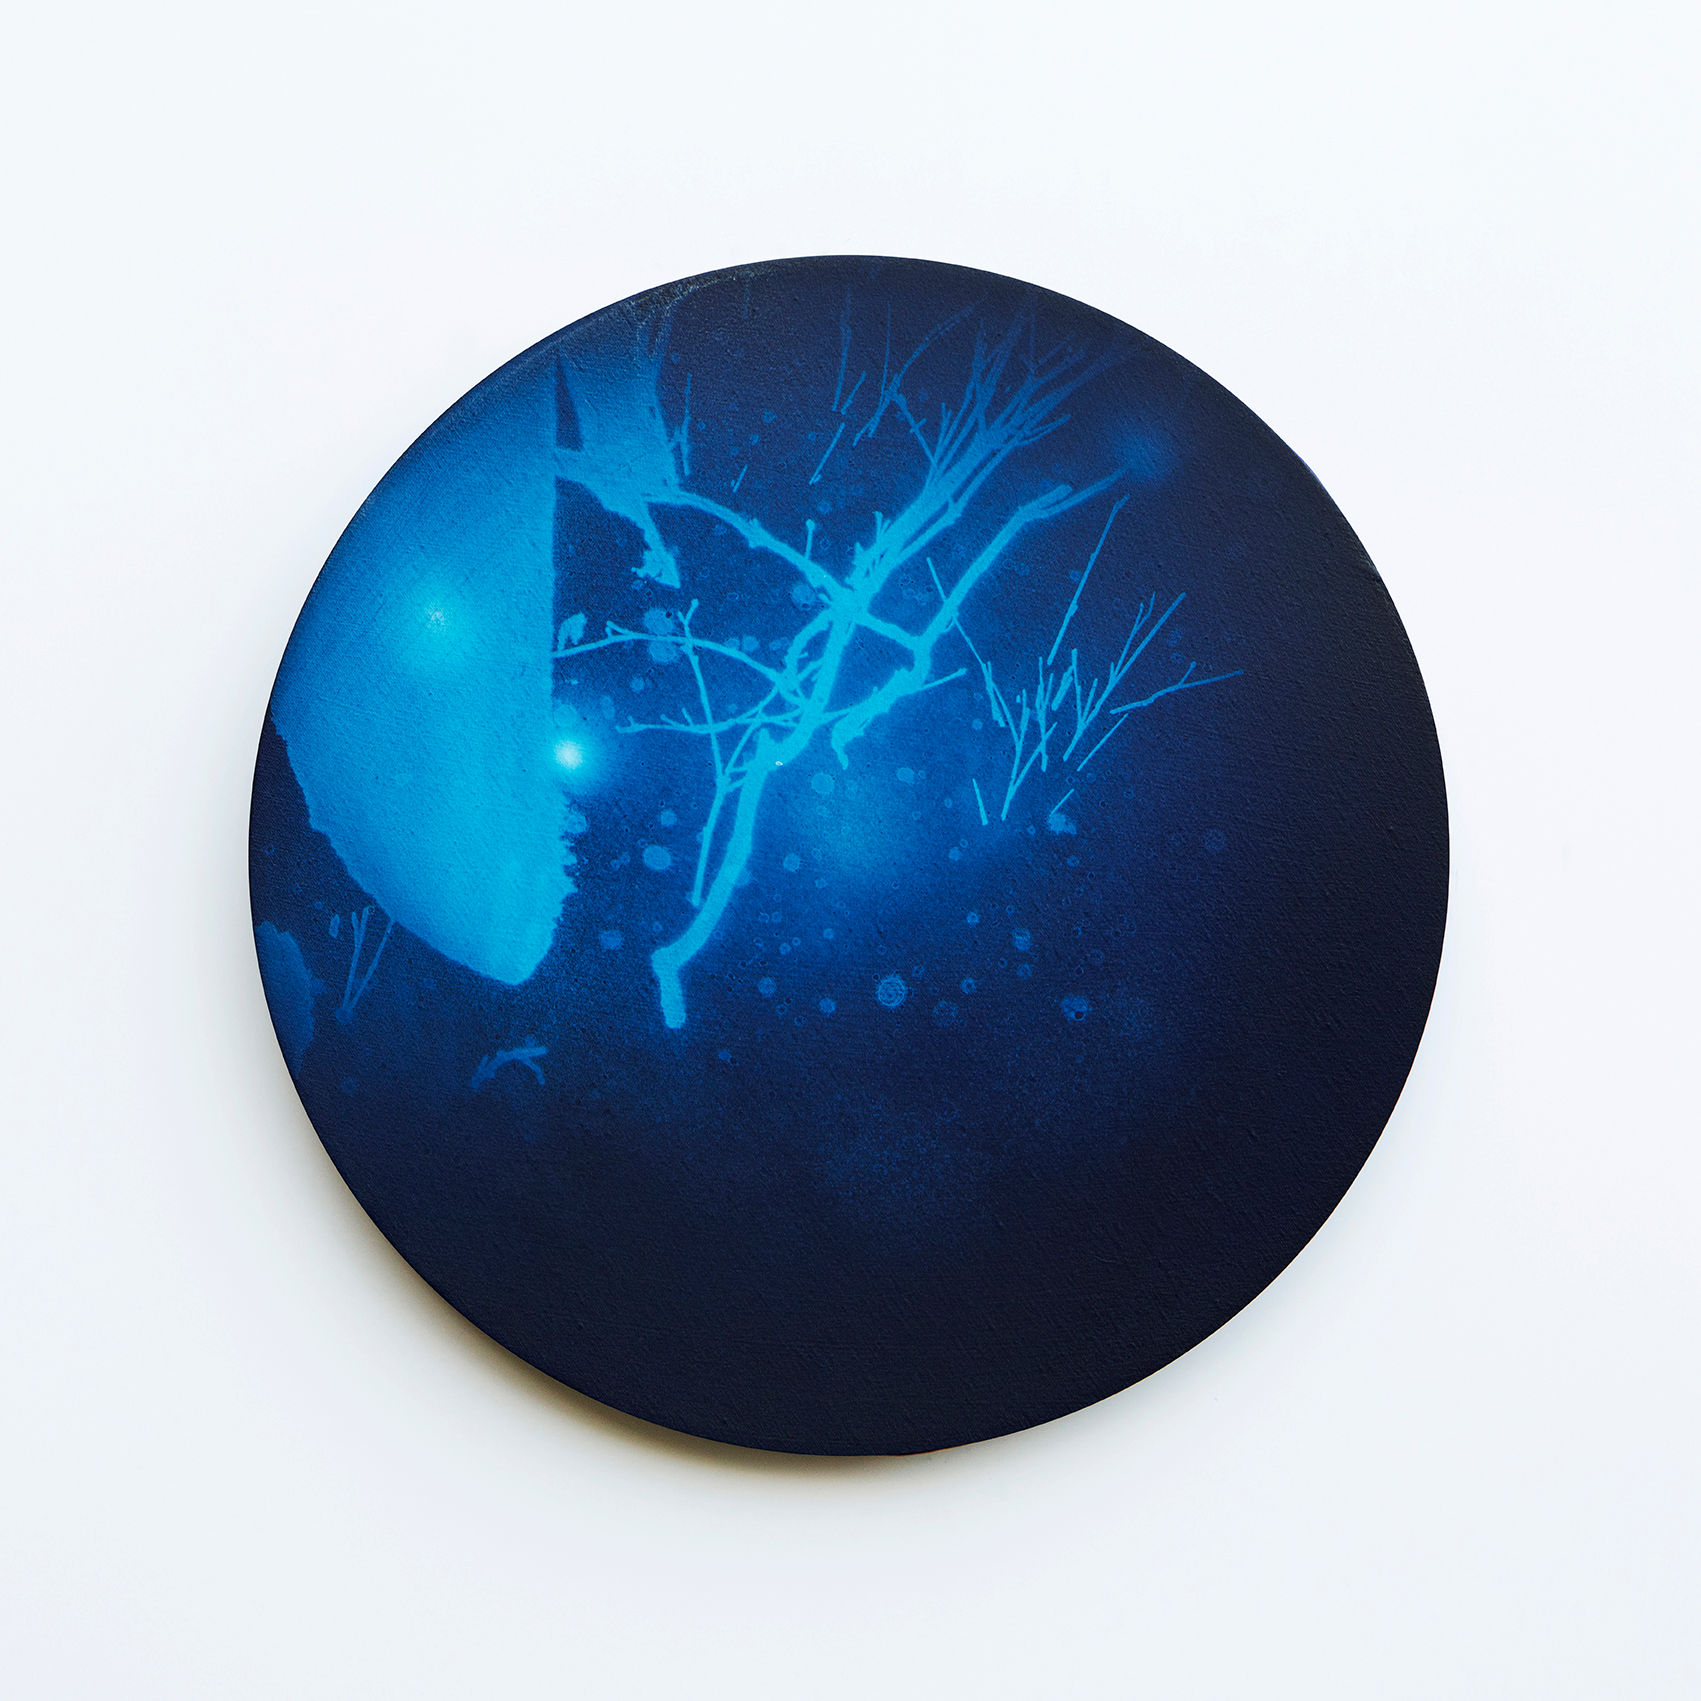 WATERSCAPE_내 안의 바깥 40, Diameter 40cm, Traditional pigment, water-print, water-drawing on canvas, 2018